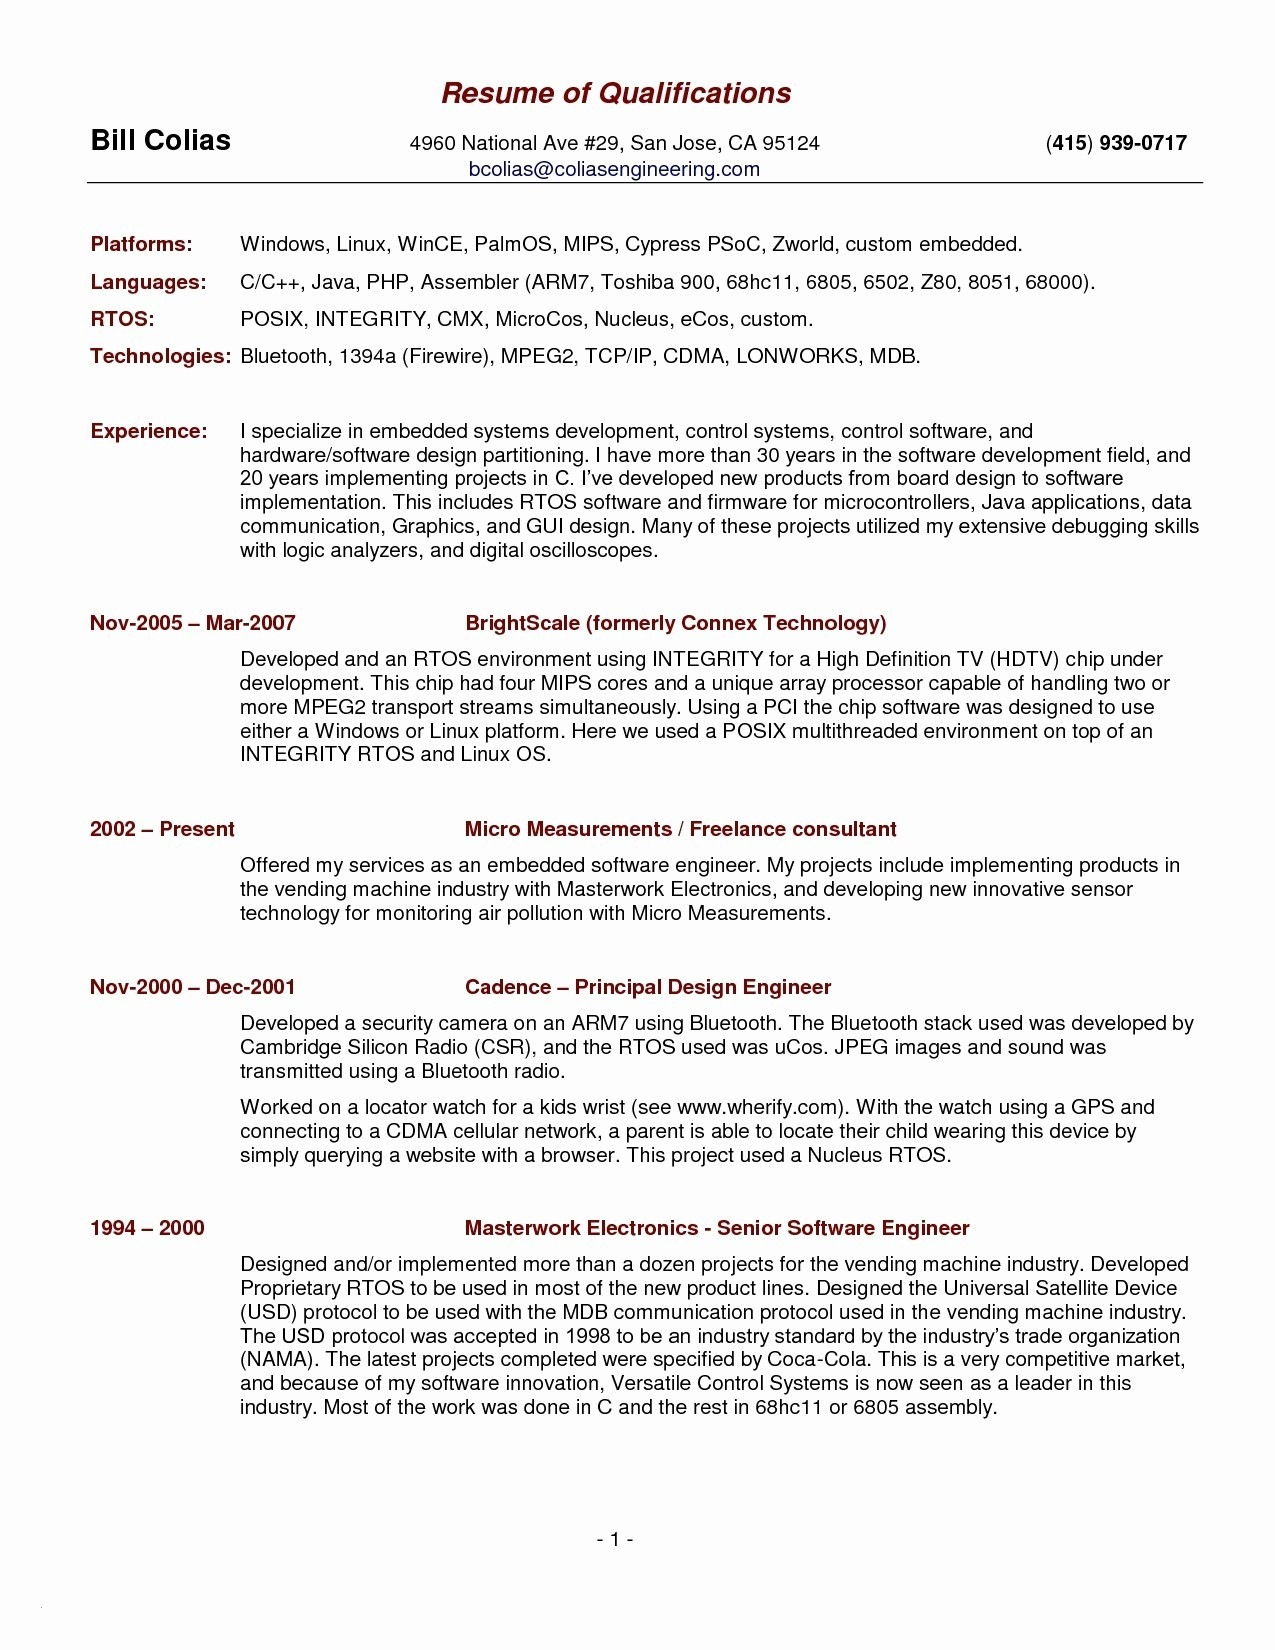 Computer Engineer Resume Template - Resume Templates Pdf Free Inspirational Lovely Pr Resume Template